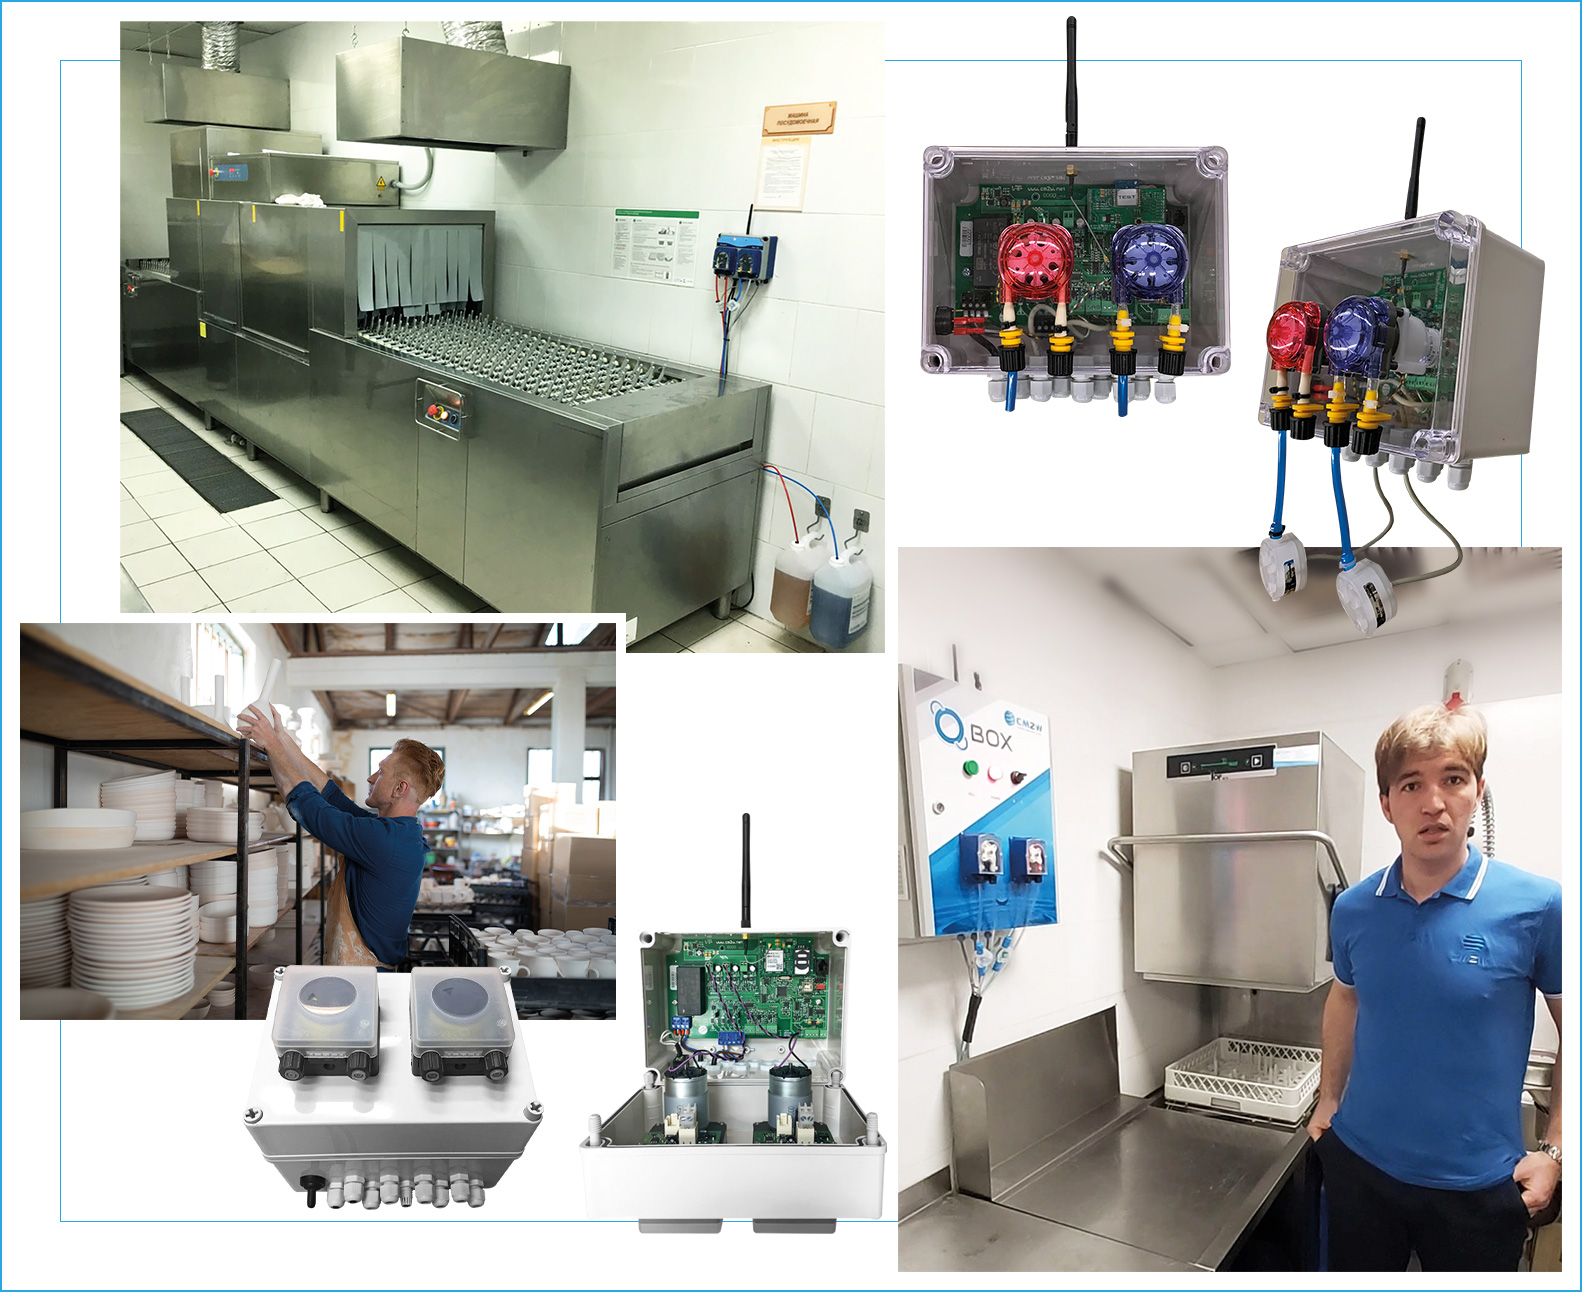 GOGO - Intelligent, Sensors Equipped Dosing System